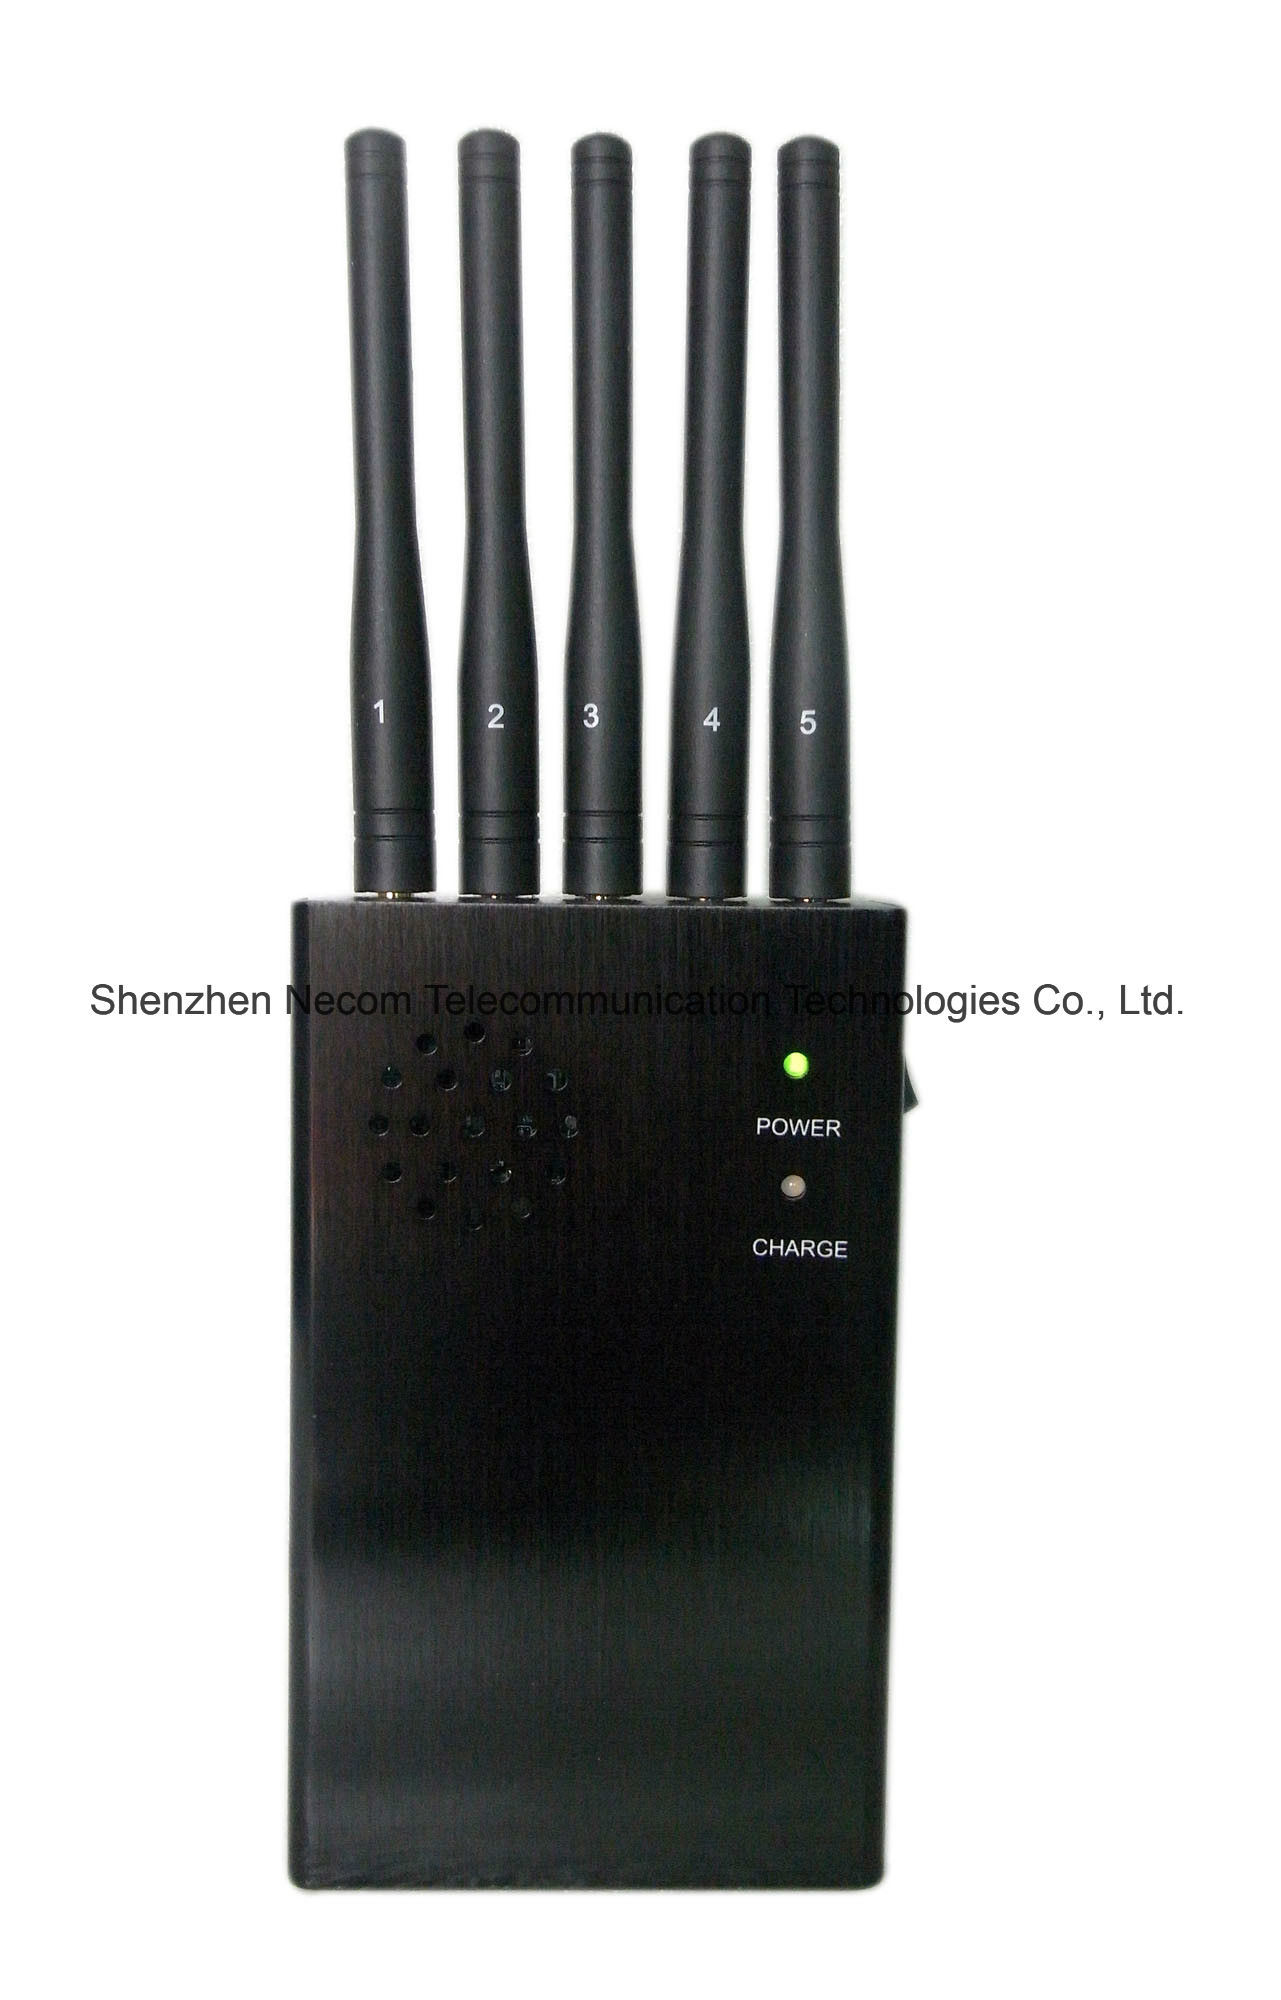 battery wifi jammer illegal - China 5 Antenna Handheld Phone Jammer & WiFi Jammer & GPS Jammer, 5bands Handheld Jammer for Cellphone, Wi-Fi, 433, 315 Remote Control Jammer - China 5 Band Signal Blockers, Five Antennas Jammers